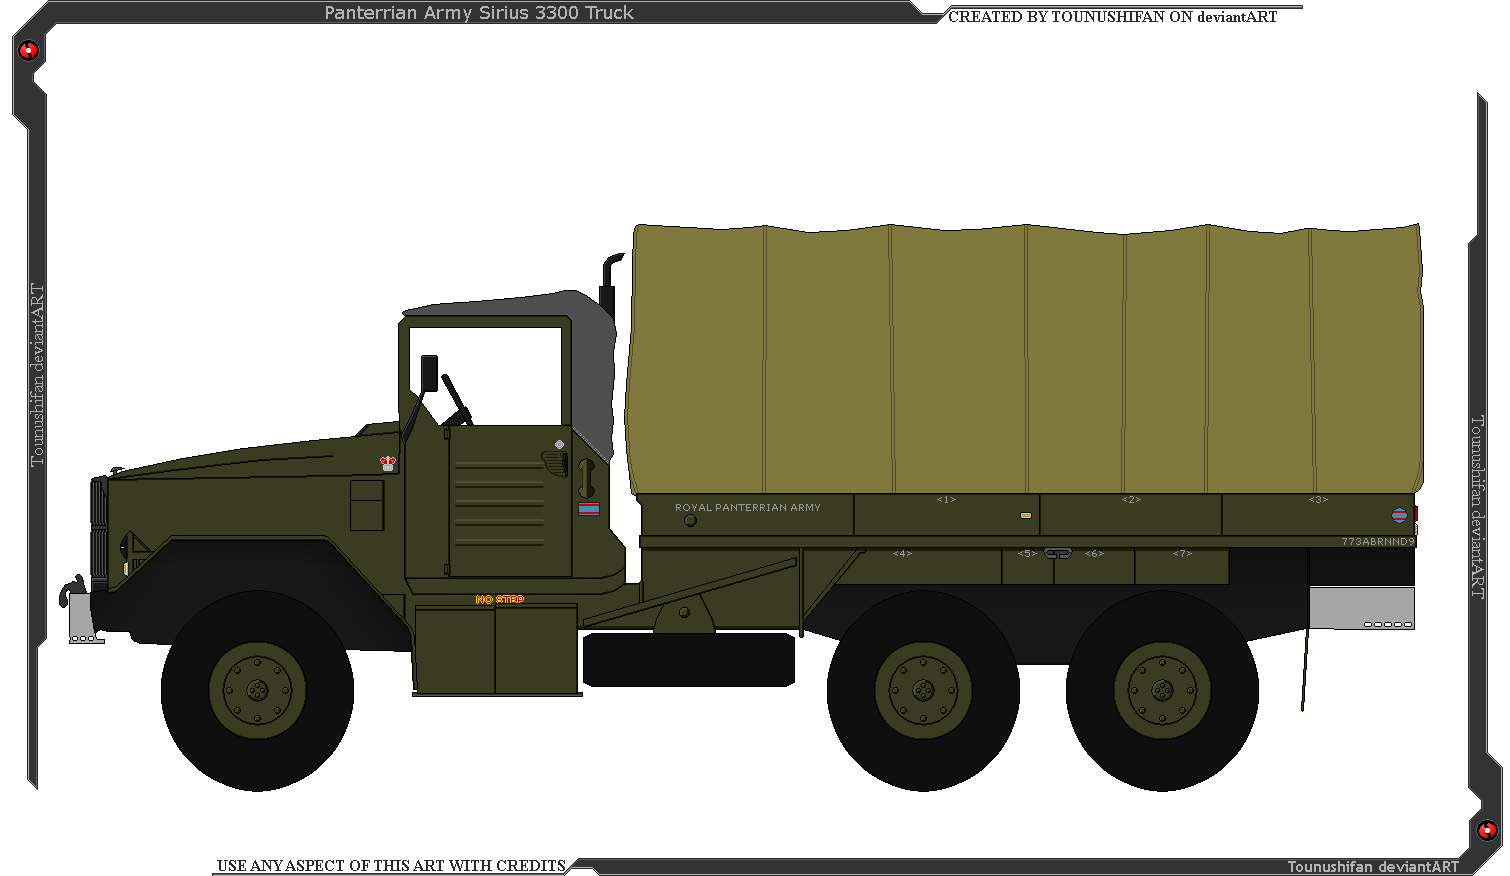 Sirius M3300, Panterrian Army Truck by Grand-Lobster-King on